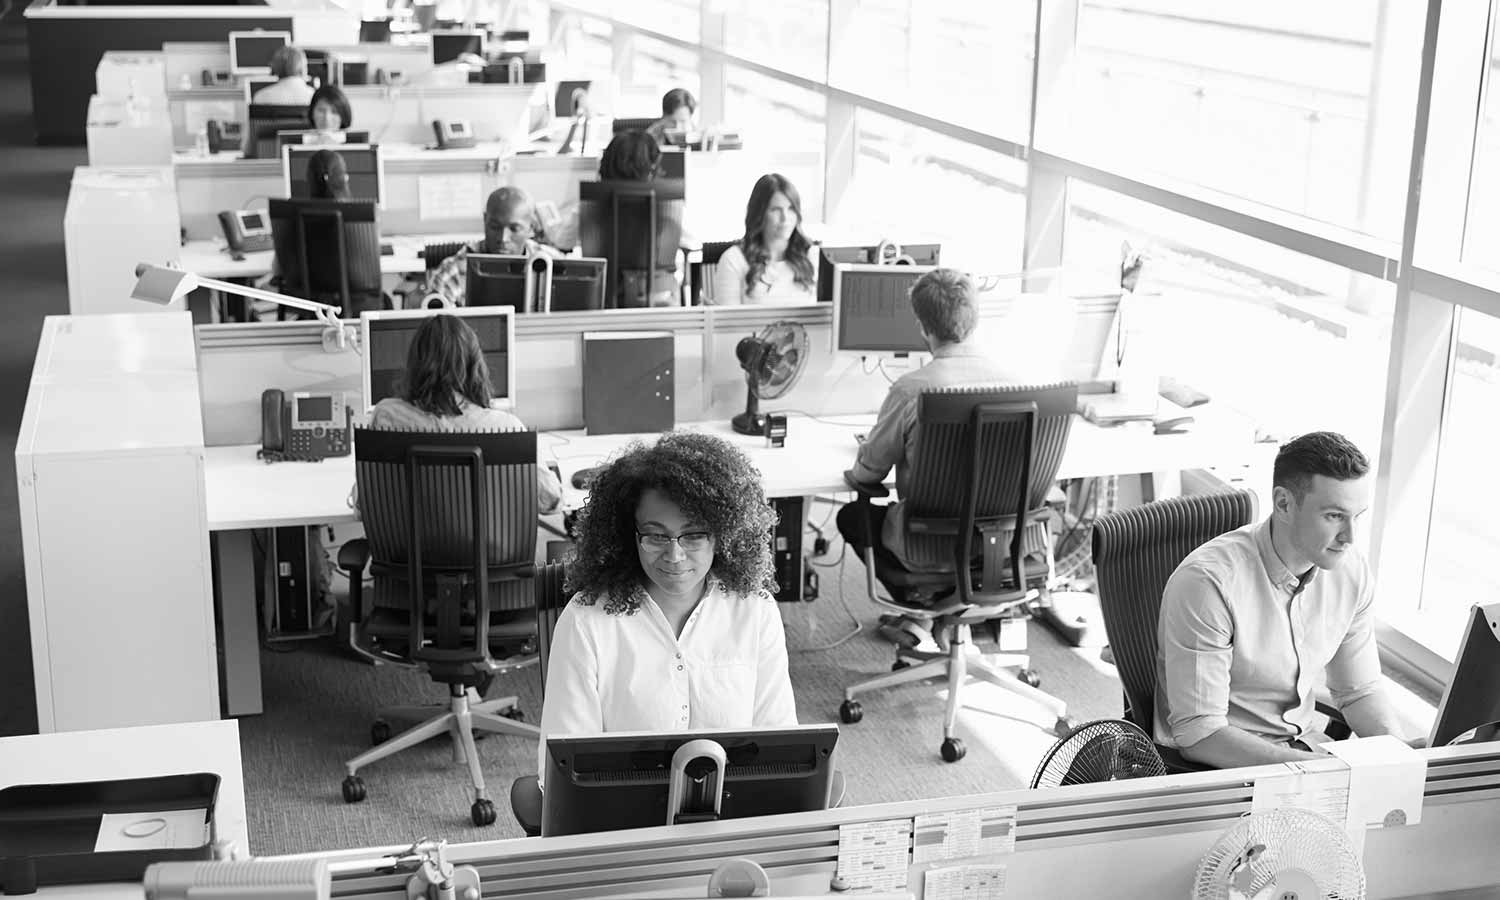 Busy office with rows of desks, black and white